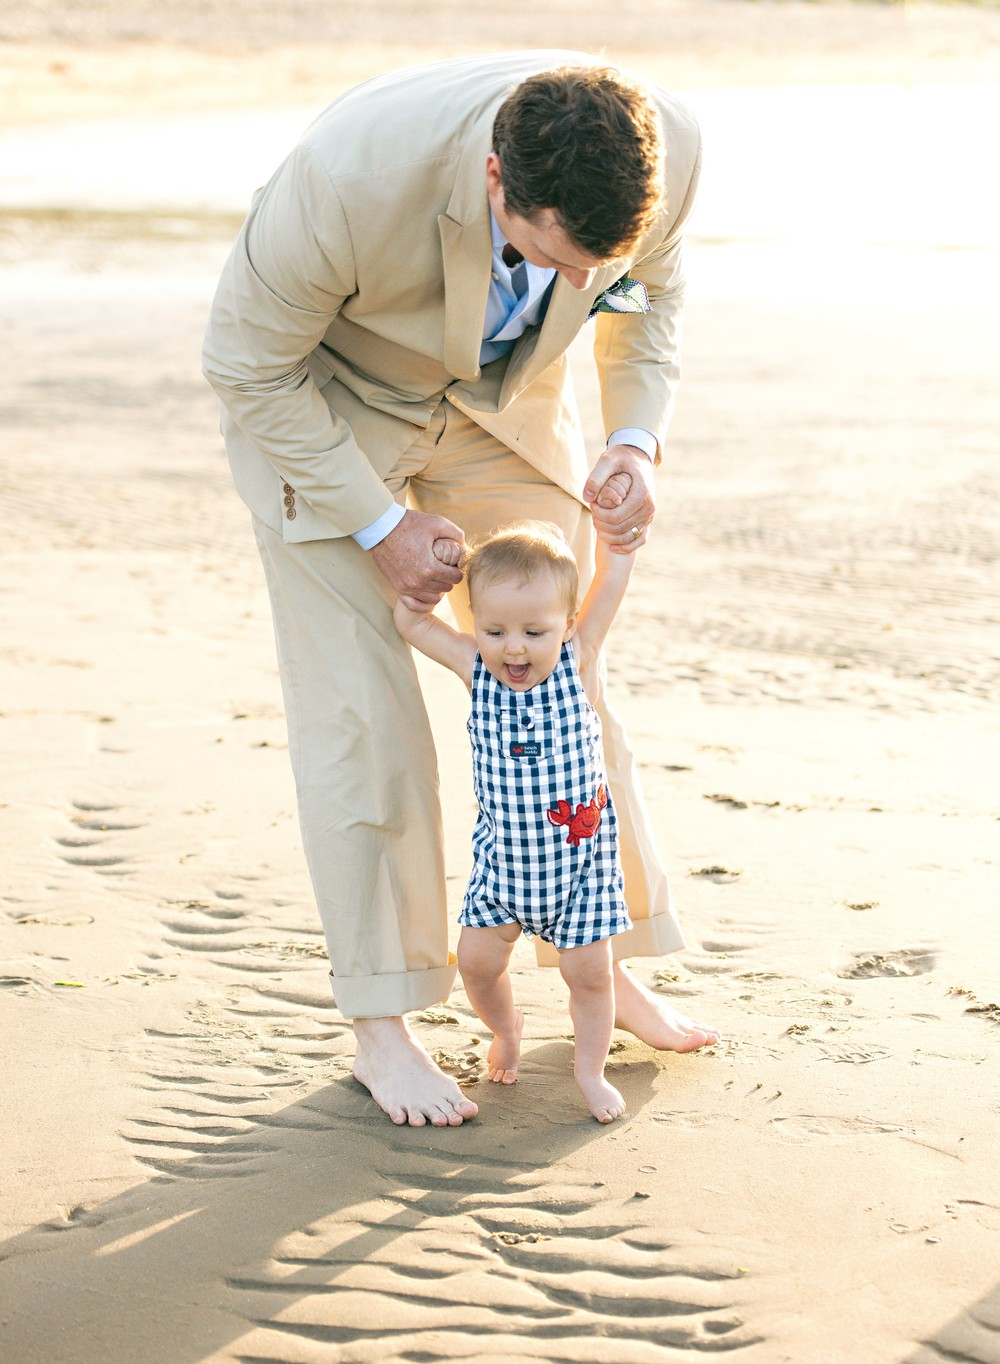 virginia-beach-norfolk-chesapeake-sandbridge-portsmouth-photographer-melissa-bliss-photography-hampton-roads-family-session